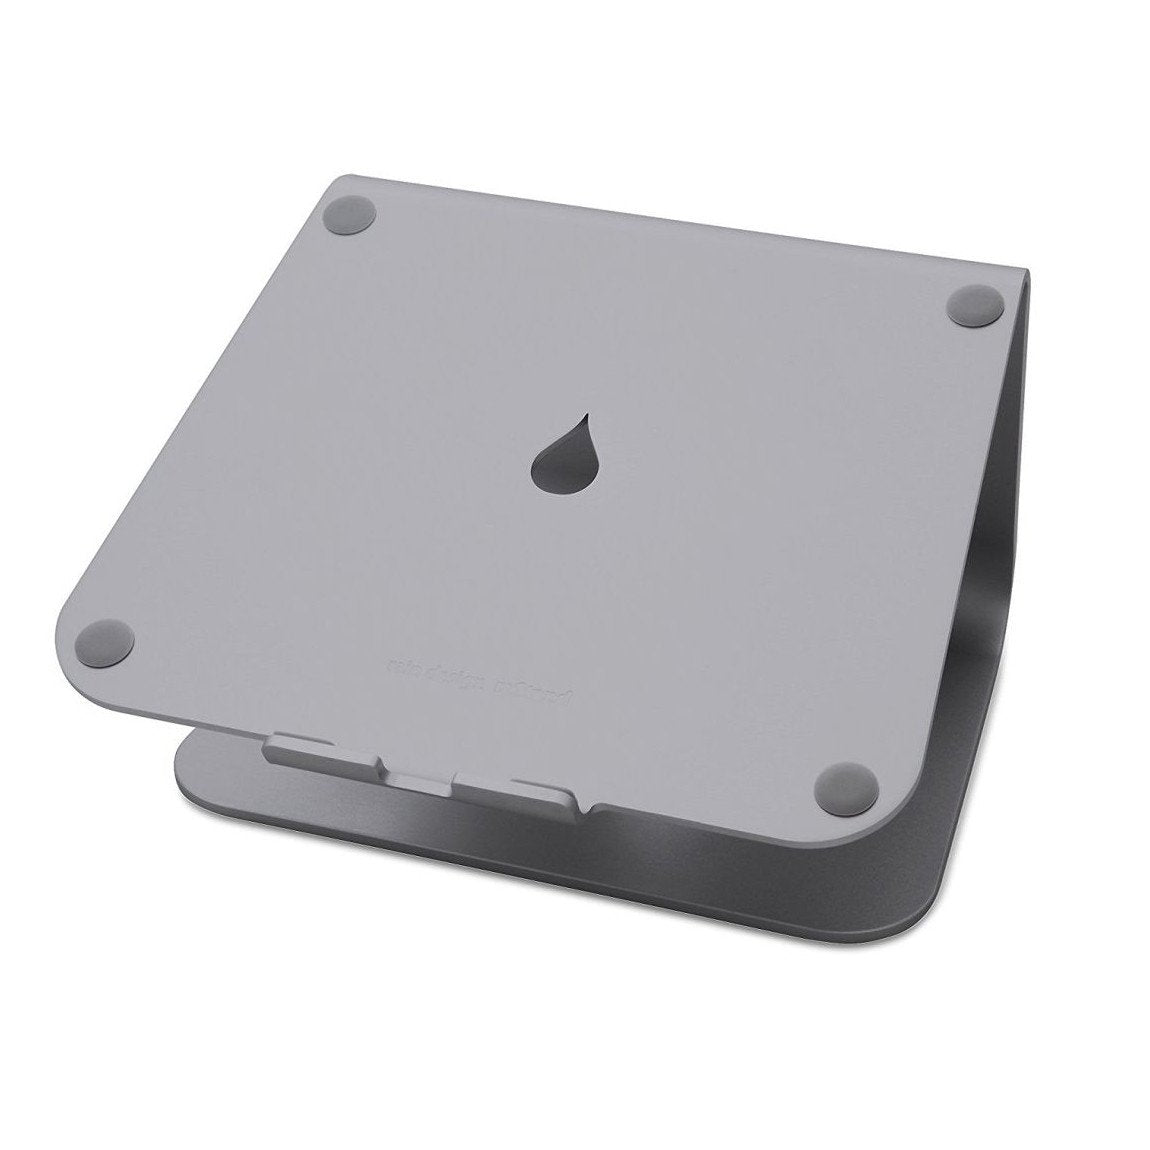 Rain Design mStand Aluminium Stand For MacBook Pro/Air - Macintosh Addict